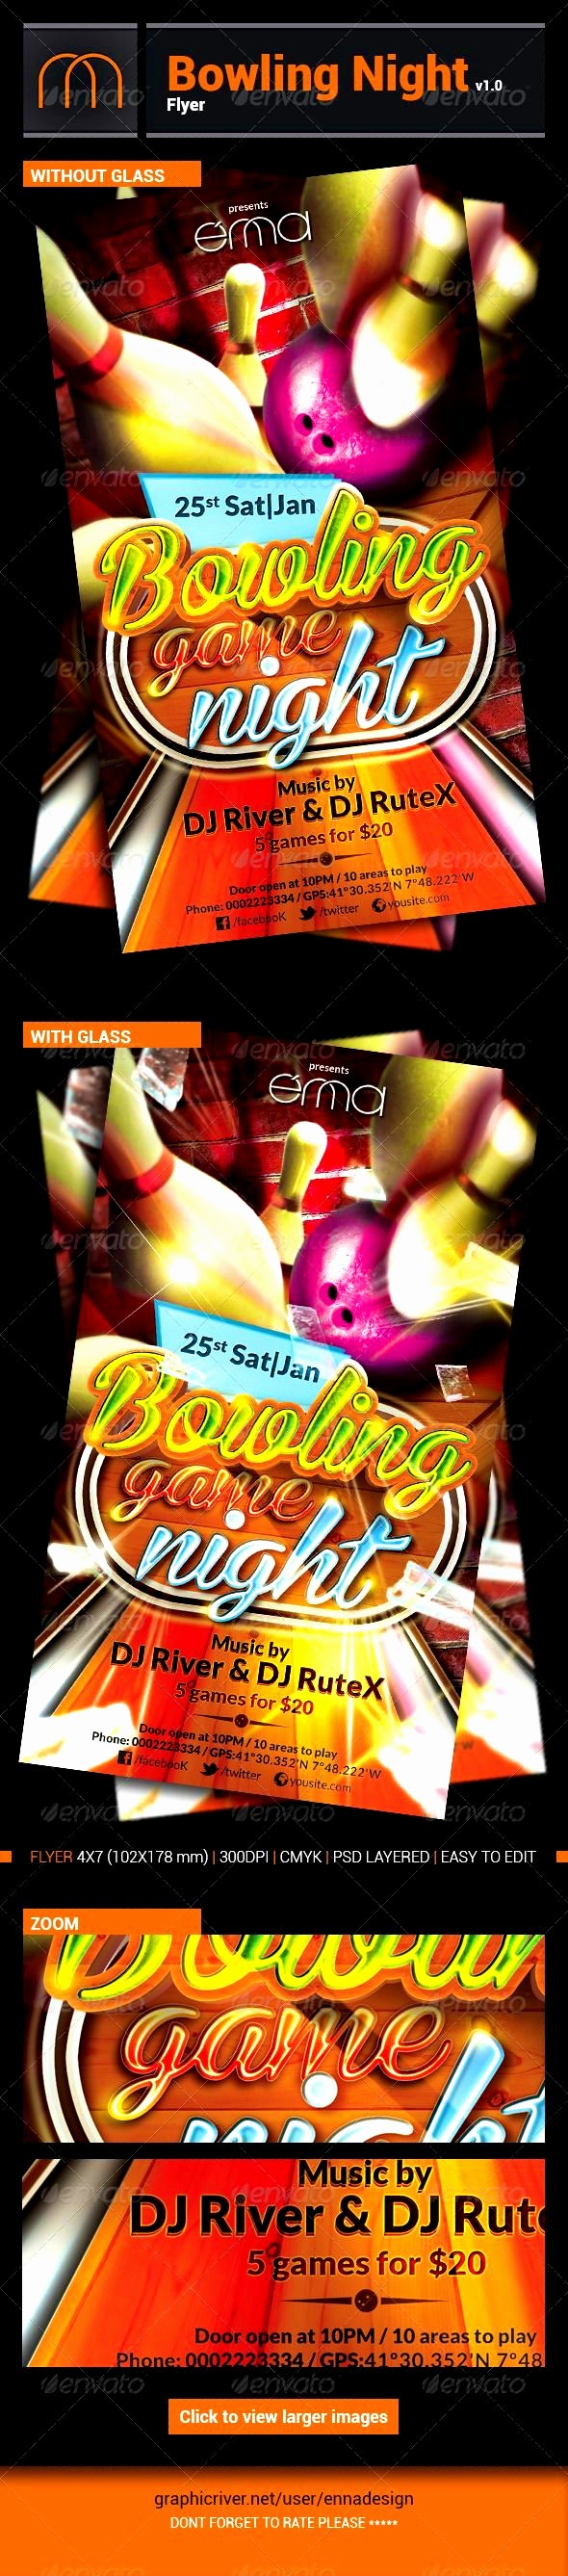 Free Game Night Flyer Template Best Of Bowling Flyer Template Free Mughals